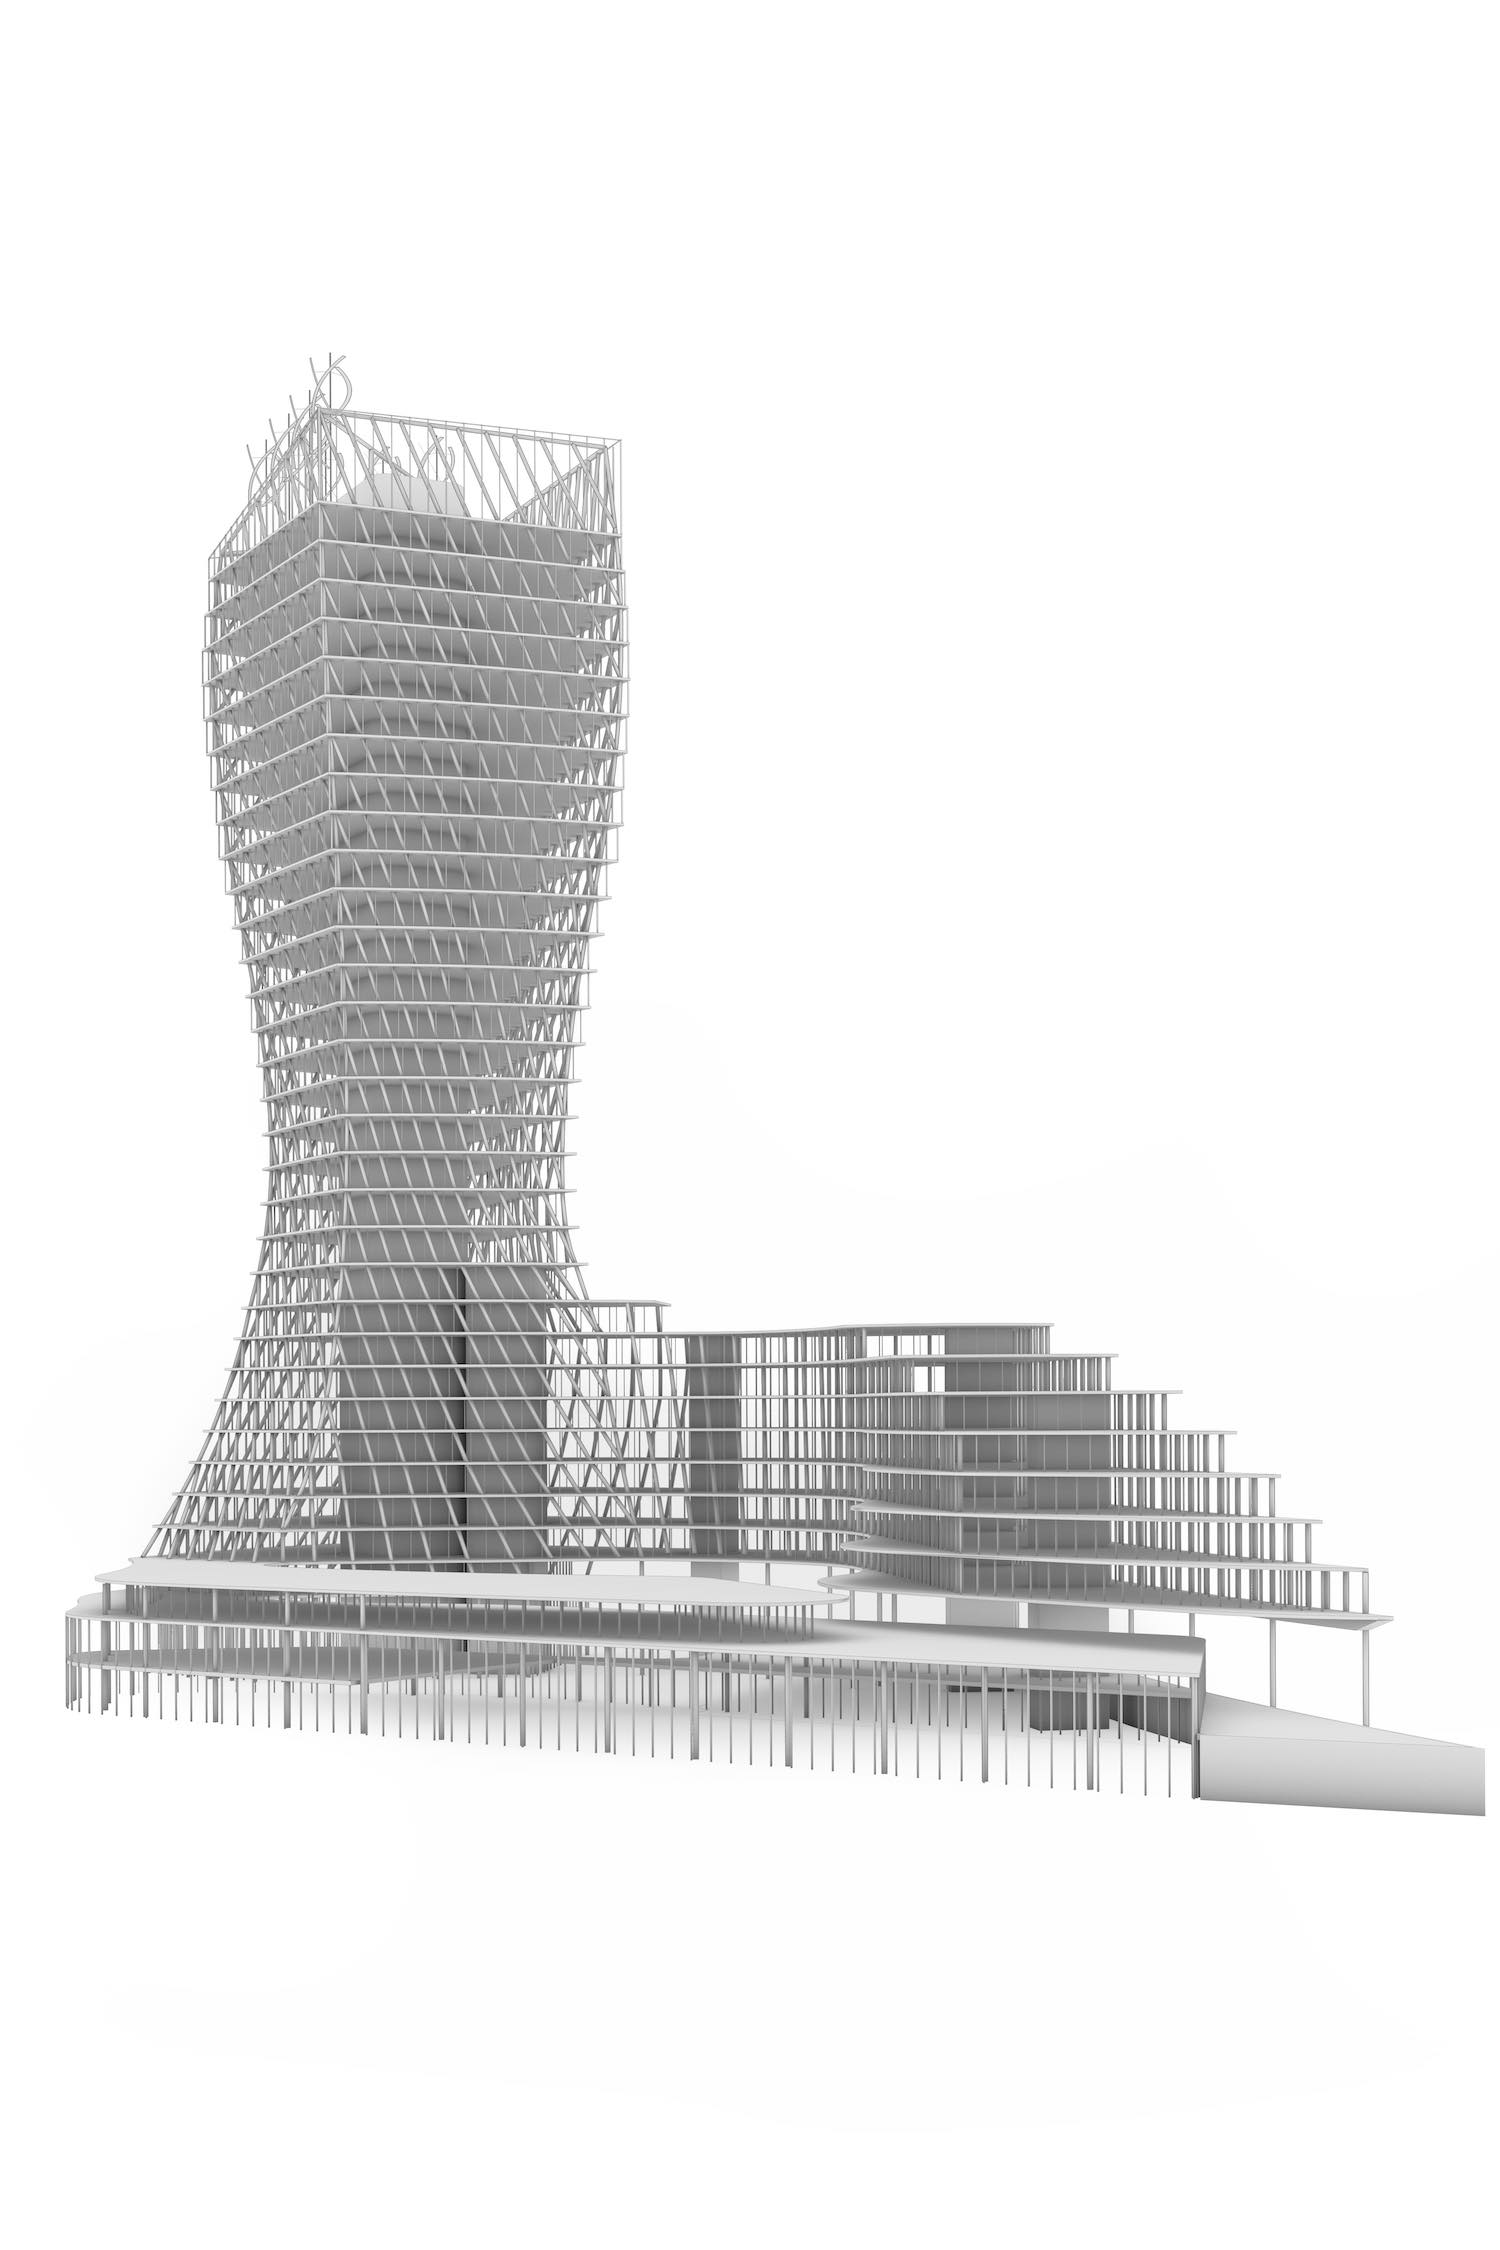 architectural model shown in the render